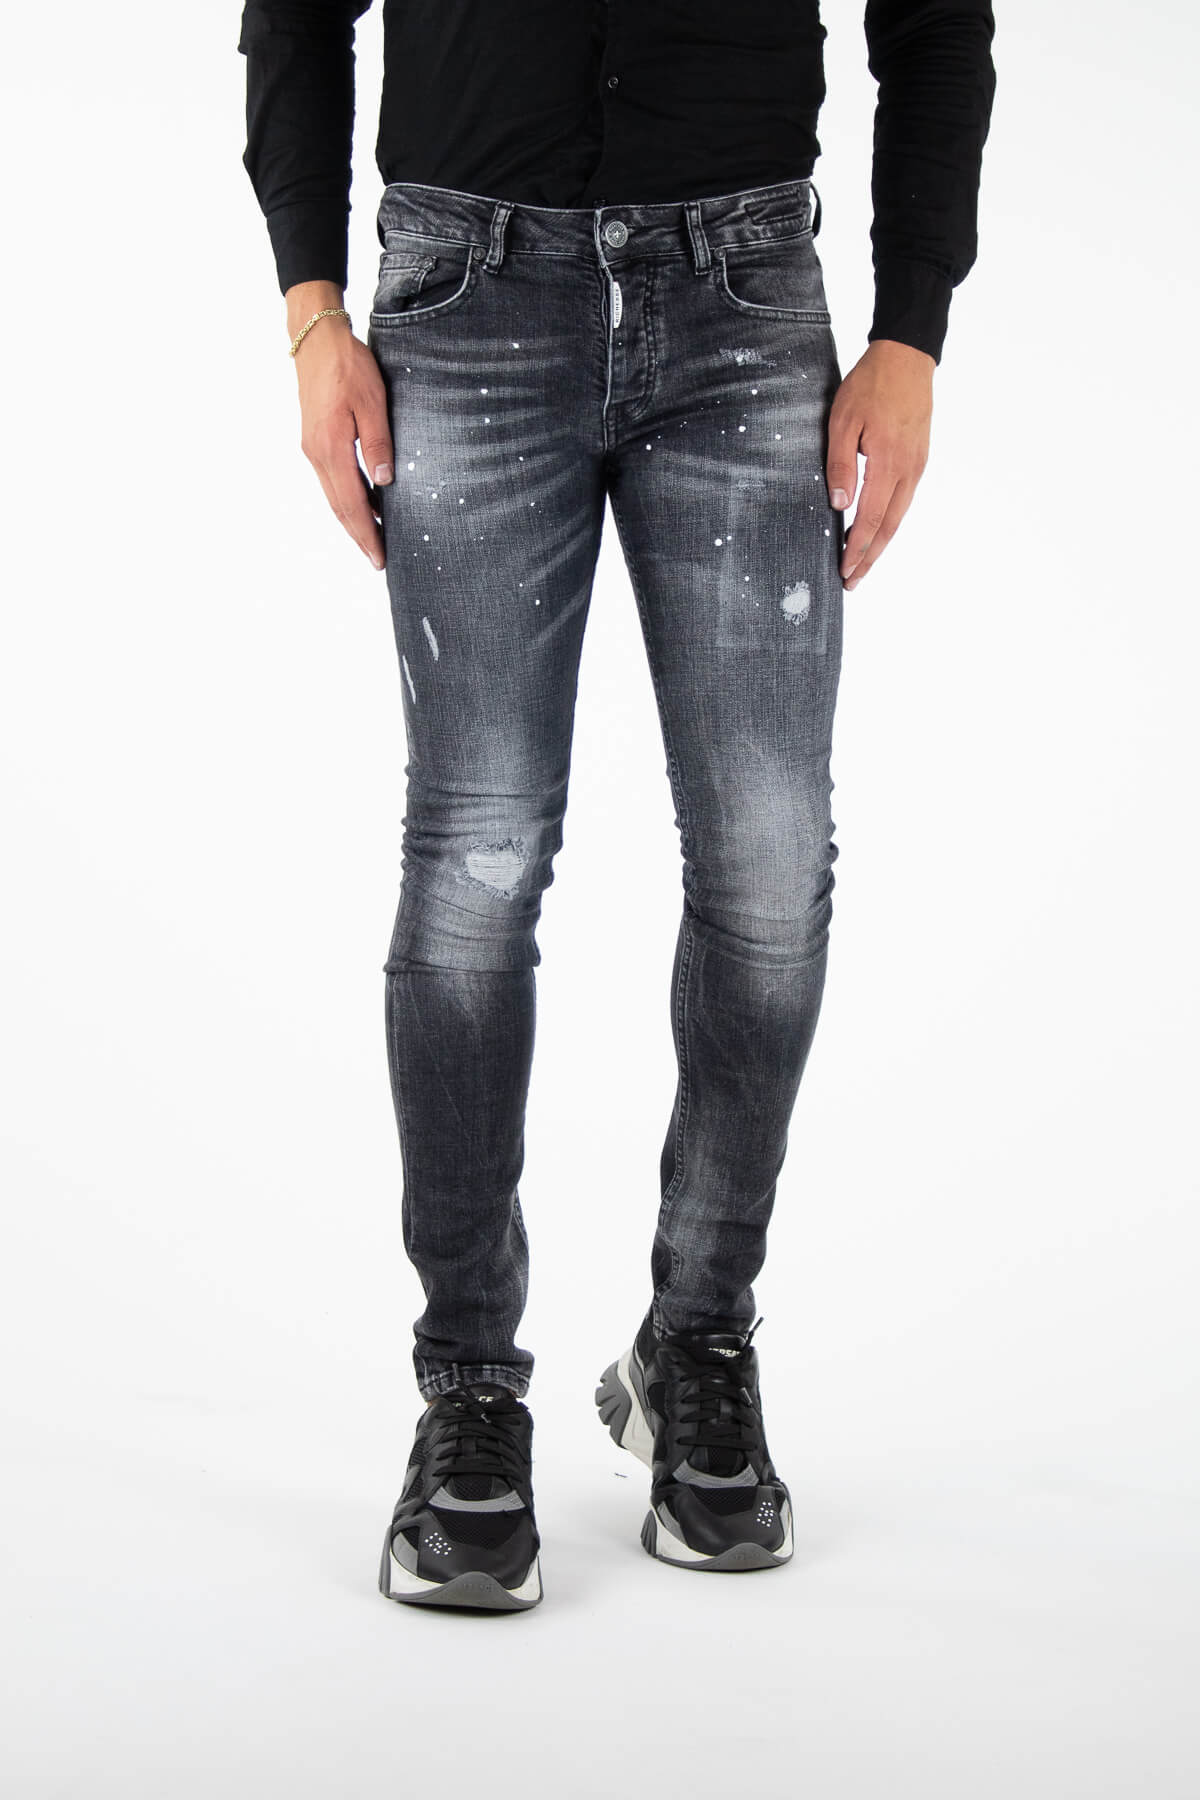 Palencia Deluxe Grey Jeans-1